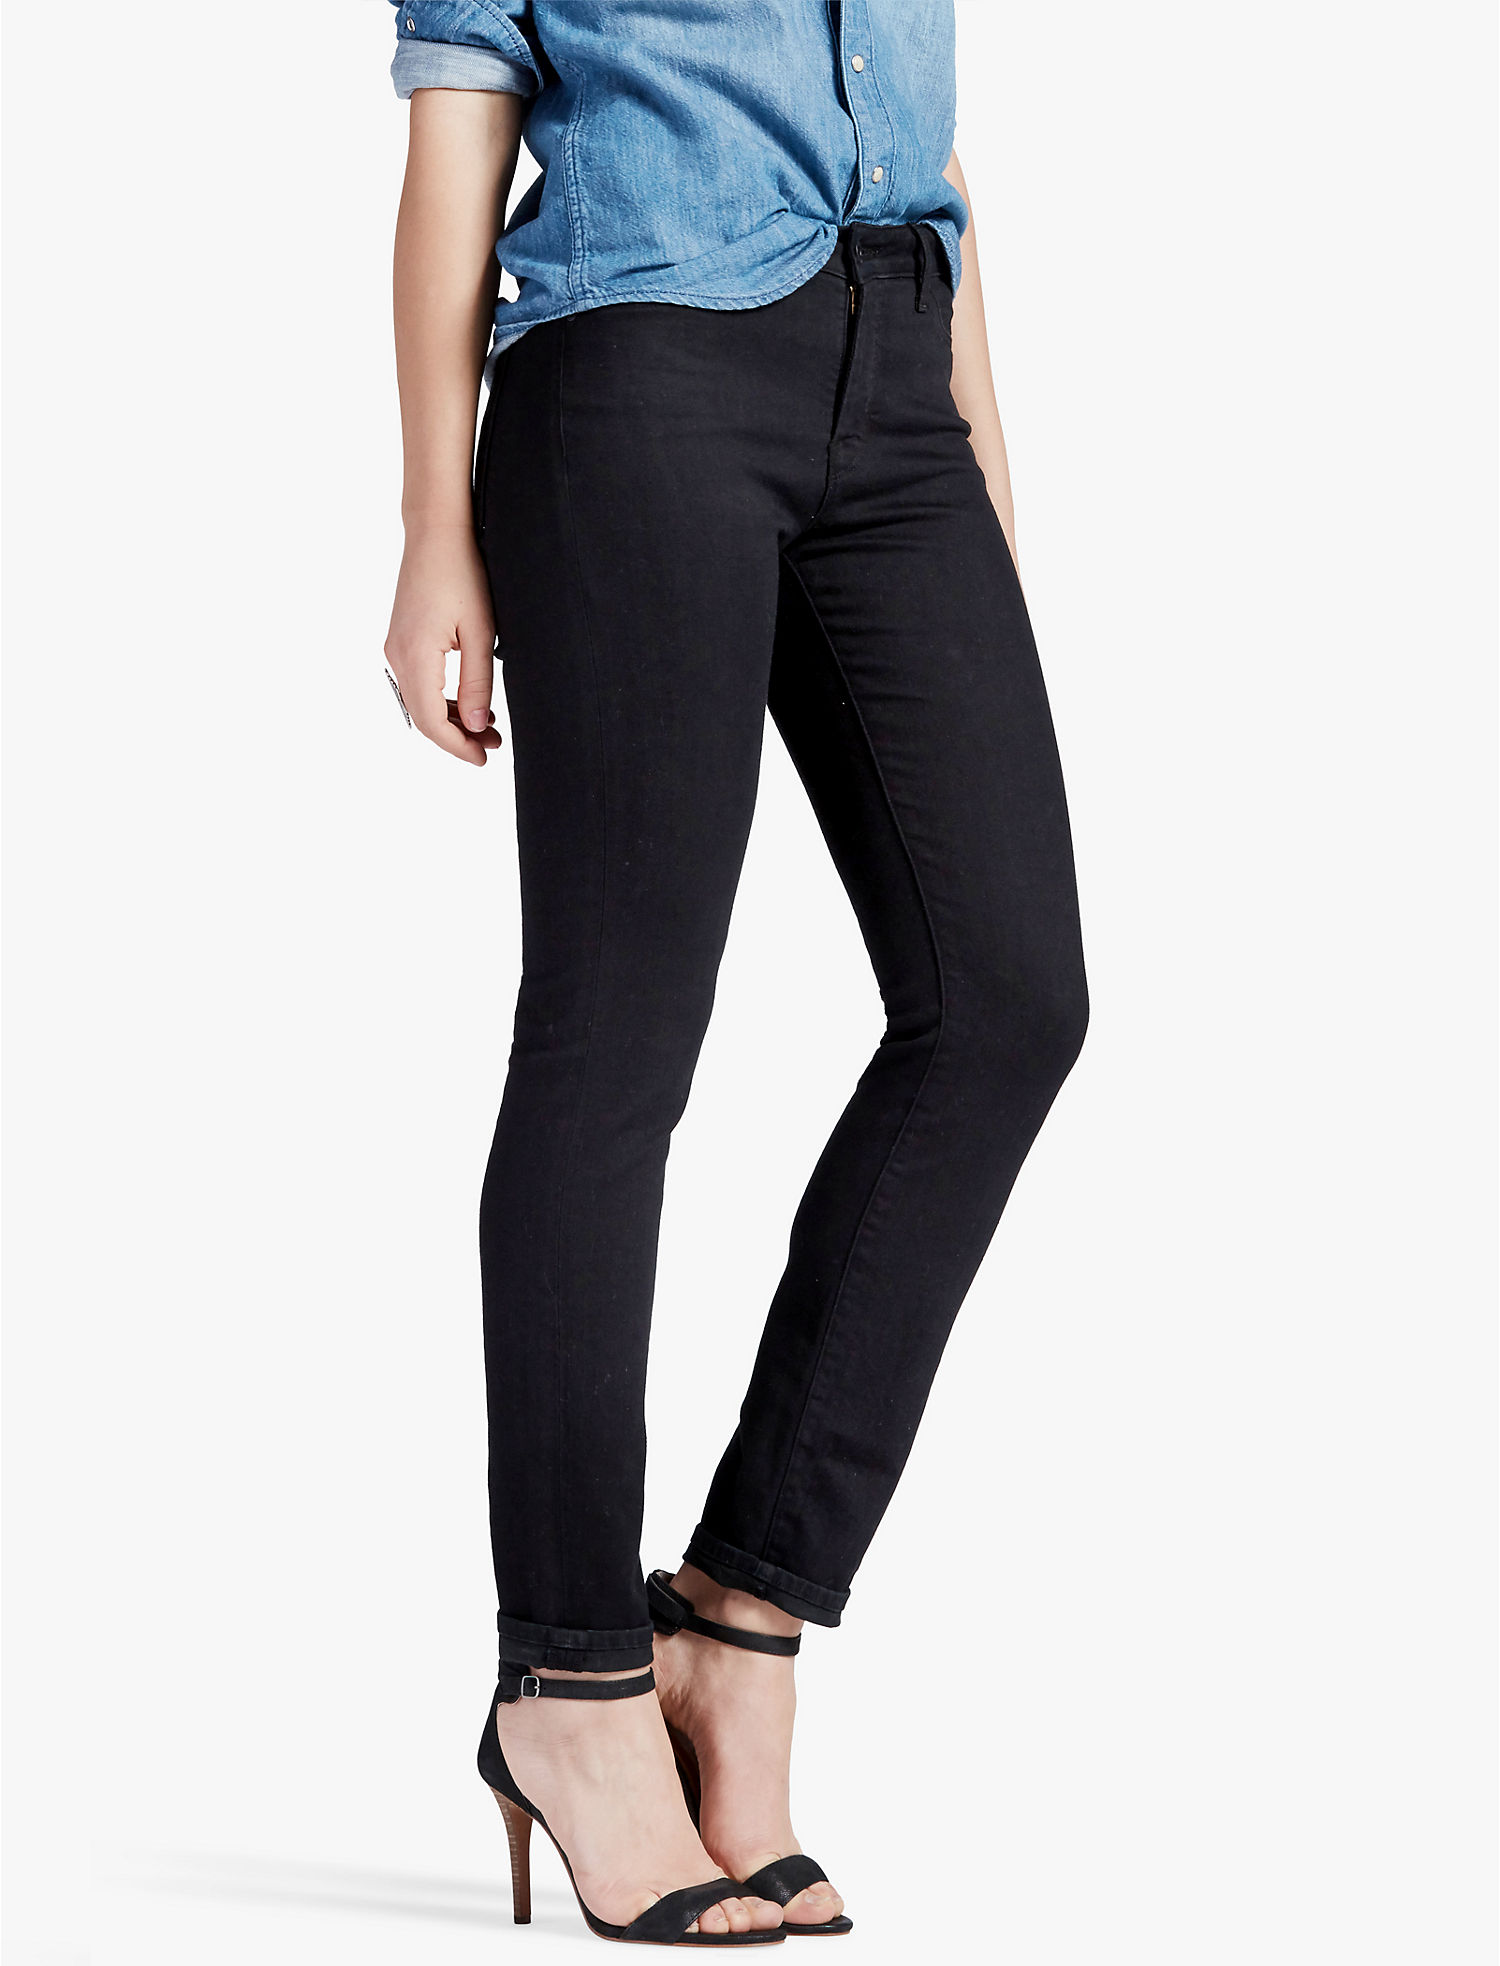 Discount Designer Jeans For Women | 50% Off Sale Styles | Lucky Brand